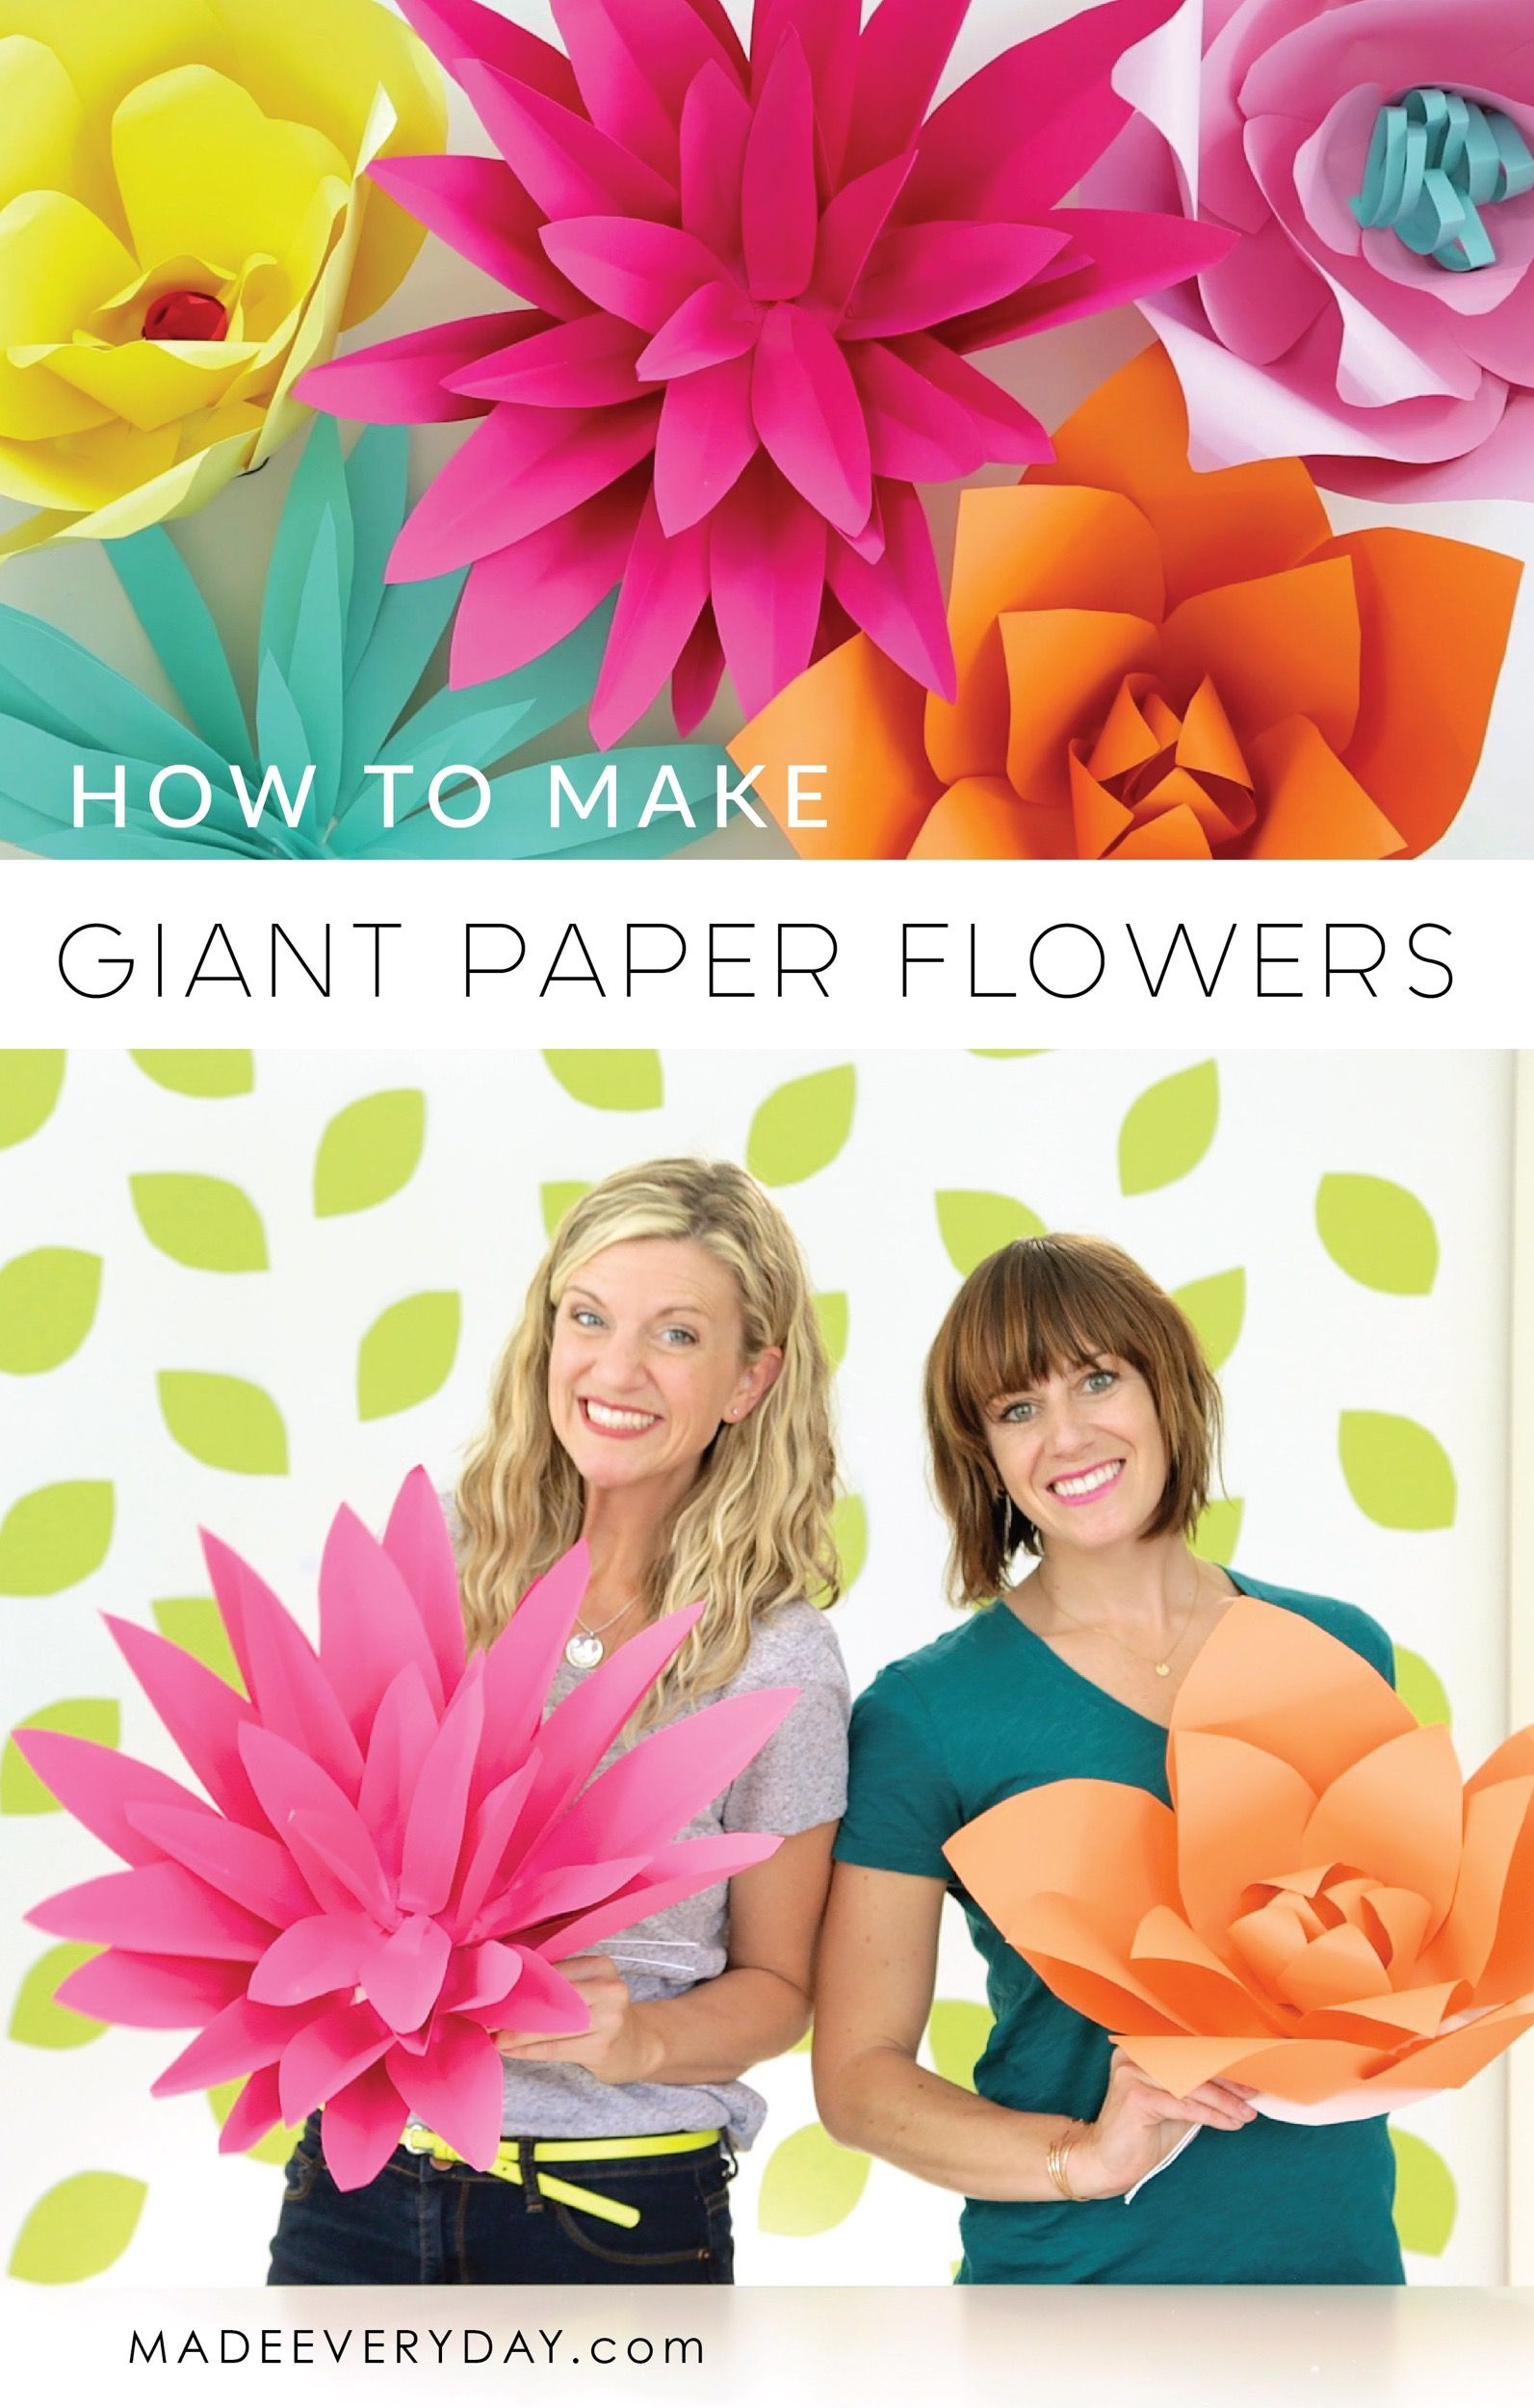 How to make giant paper flowers video tutorial on made everyday with how to make giant paper flowers video tutorial on made everyday with dana willard so mightylinksfo